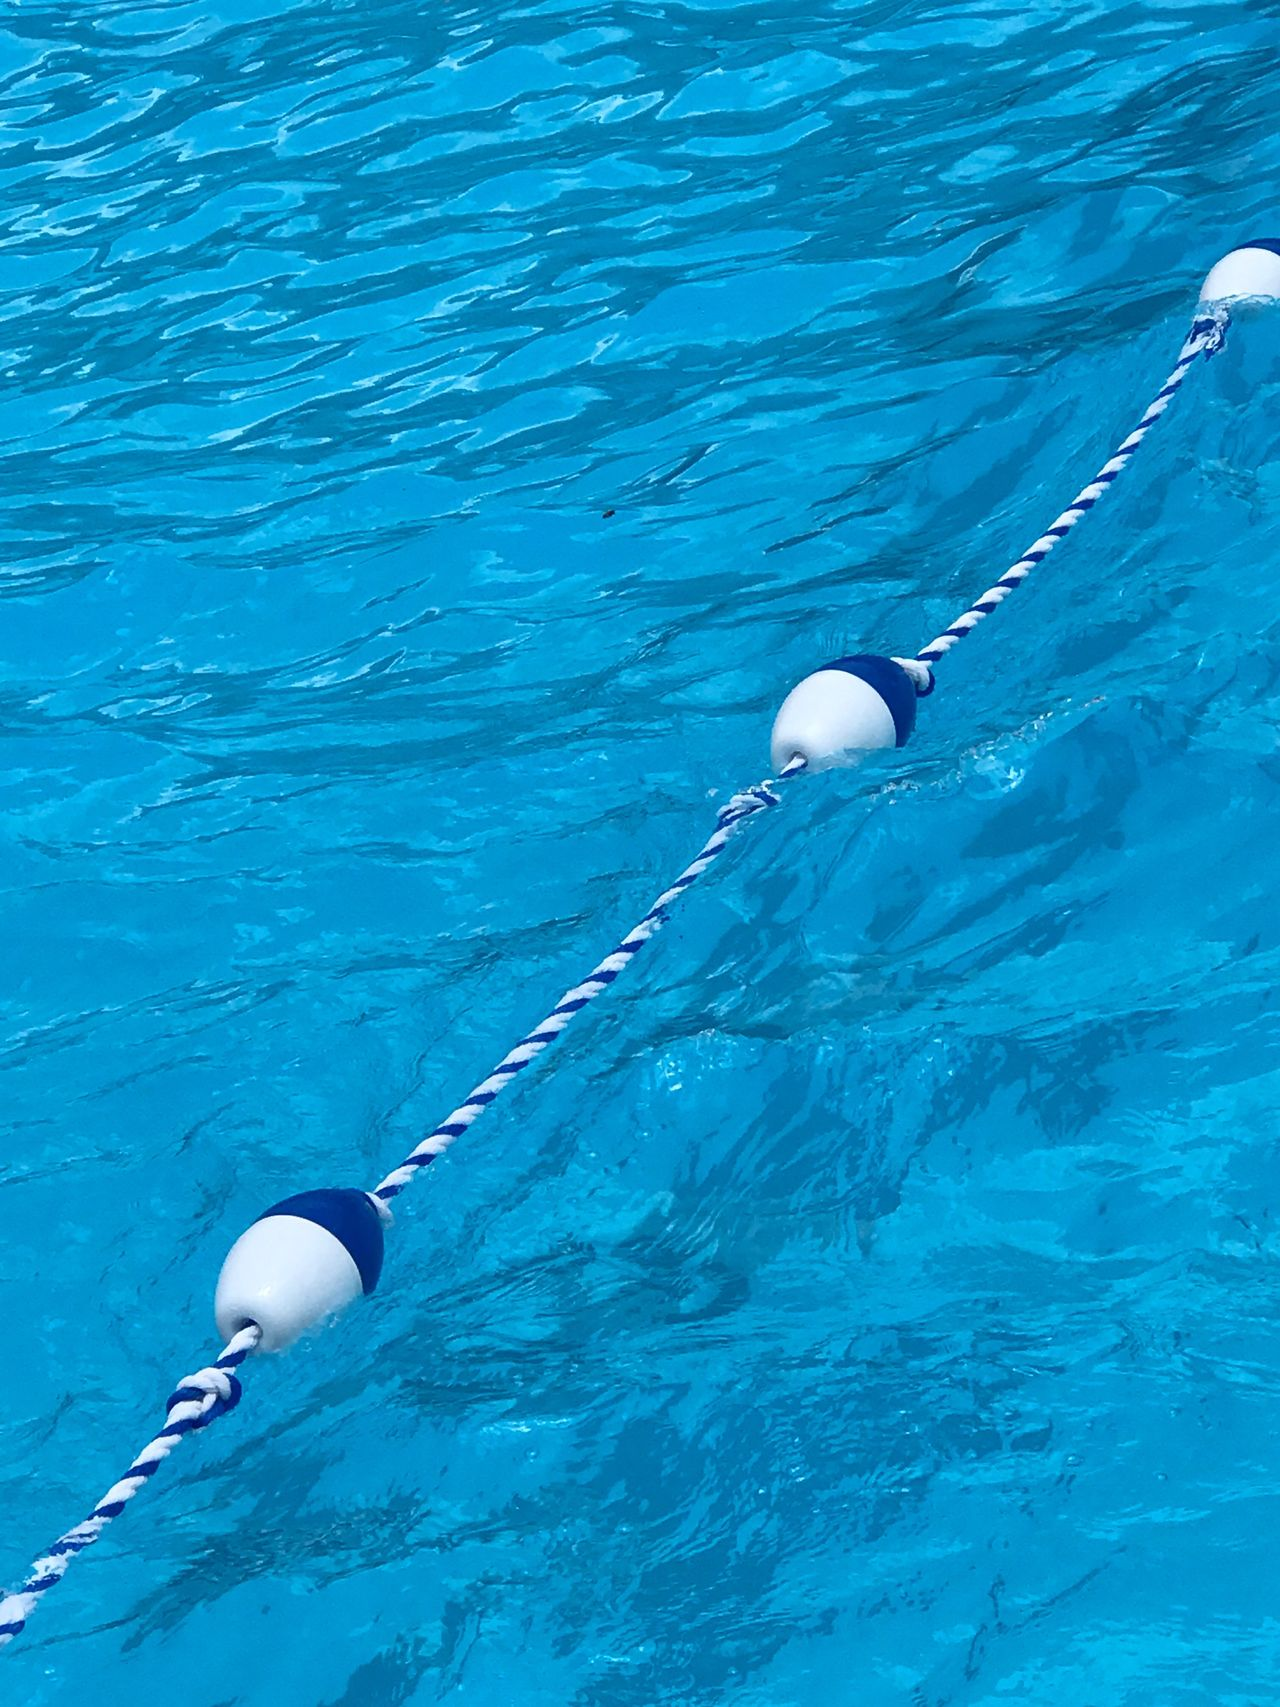 Crystal blue waters with a swimming buoy marking deep end of pool. Swimming Pool Clear Water Blue Water Water Outdoors Day No People Blue Pool Safety Floatline Safety Rope Divider Rope Safety Refreshing Summer Swim